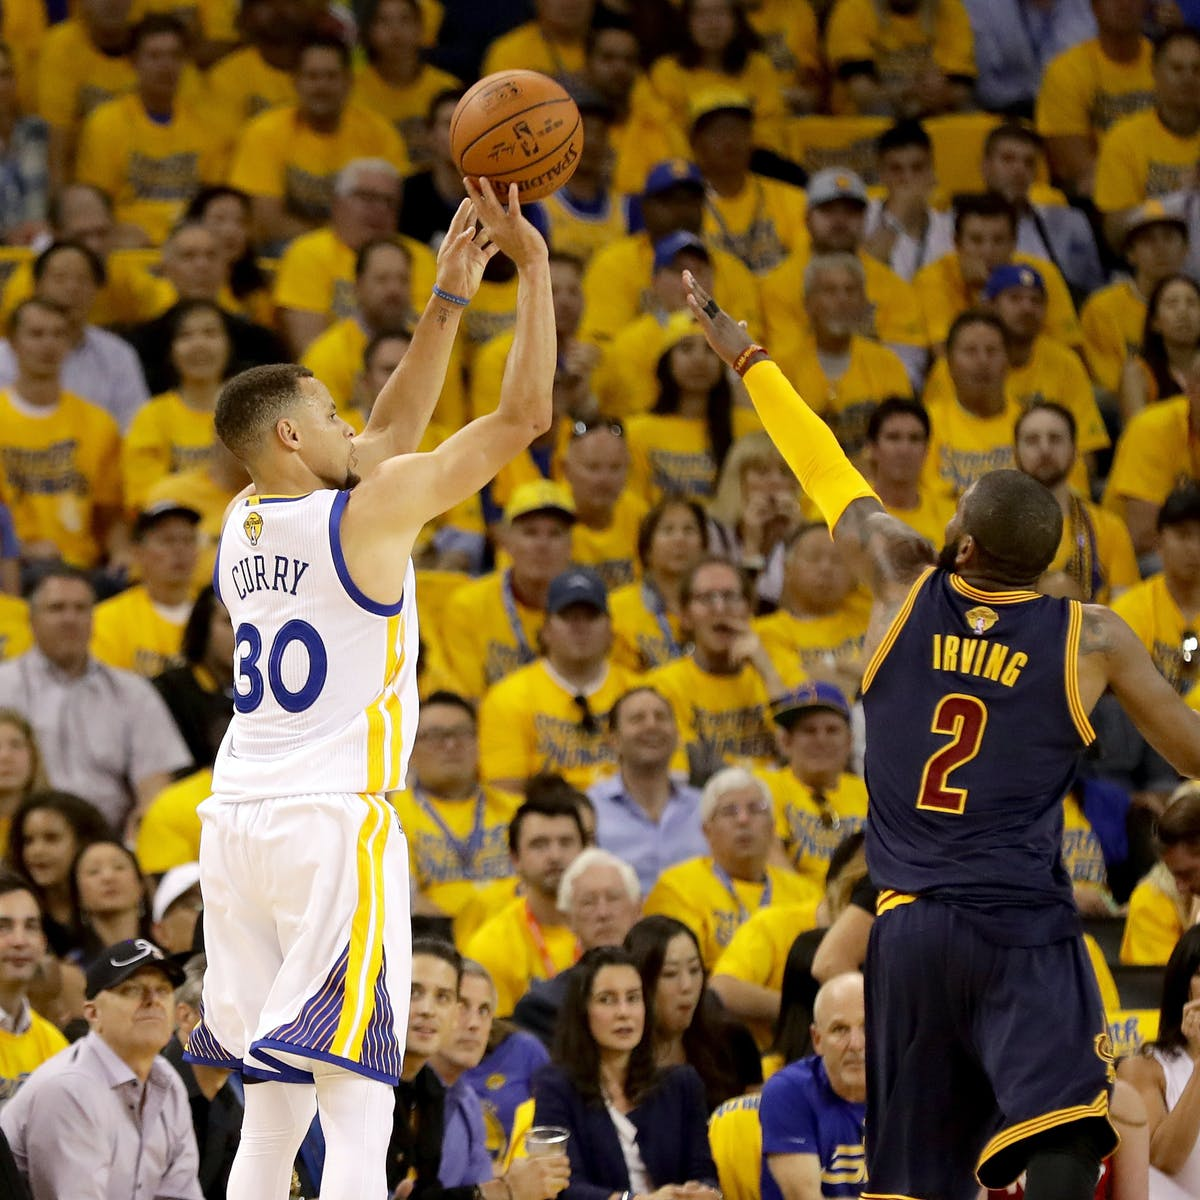 The Physics of a Perfect Three-Point Shot in Basketball